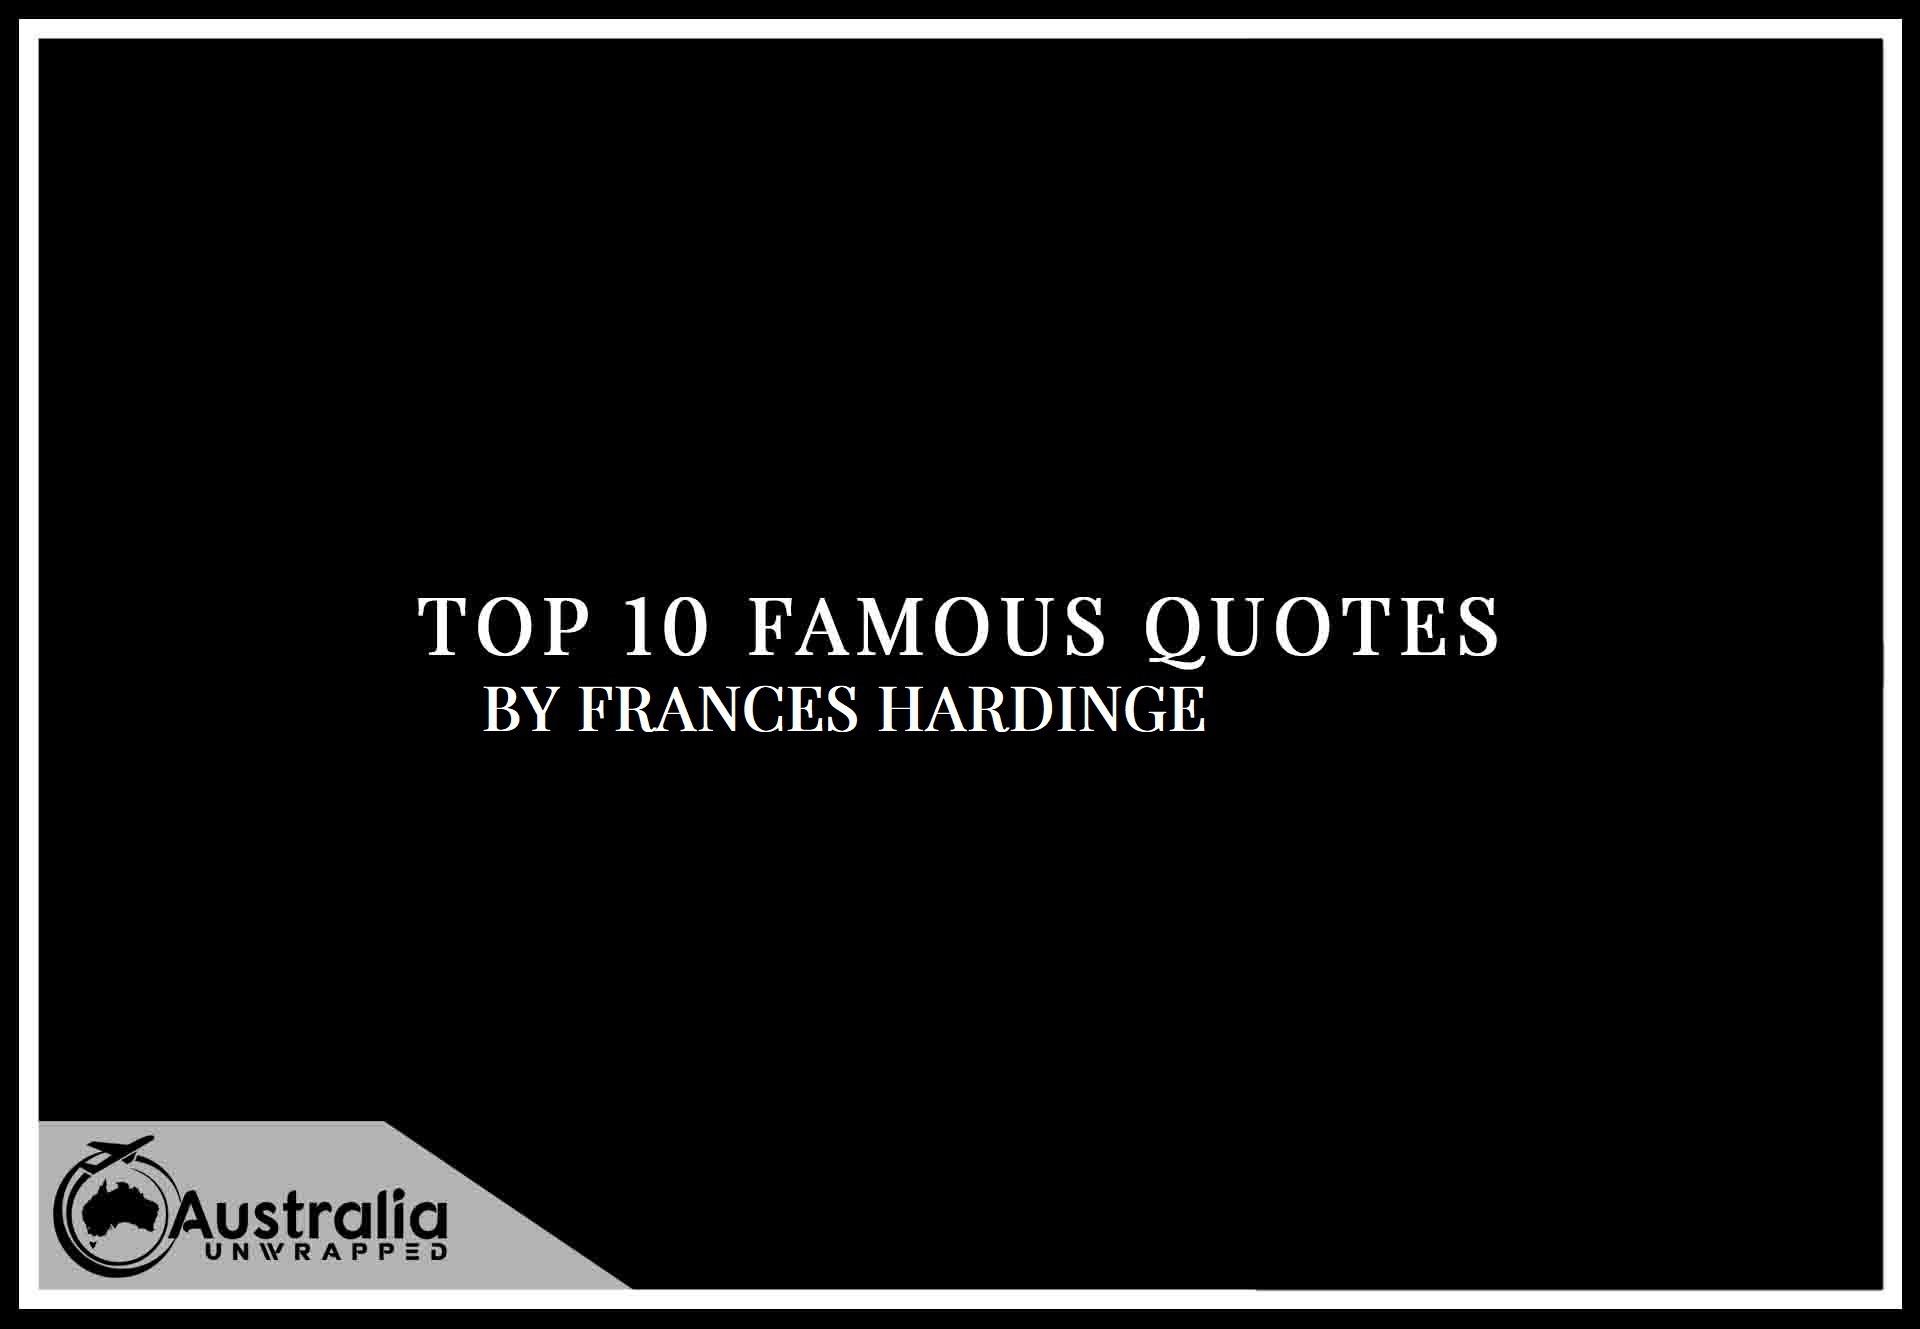 Top 10 Famous Quotes by Author Frances Hardinge